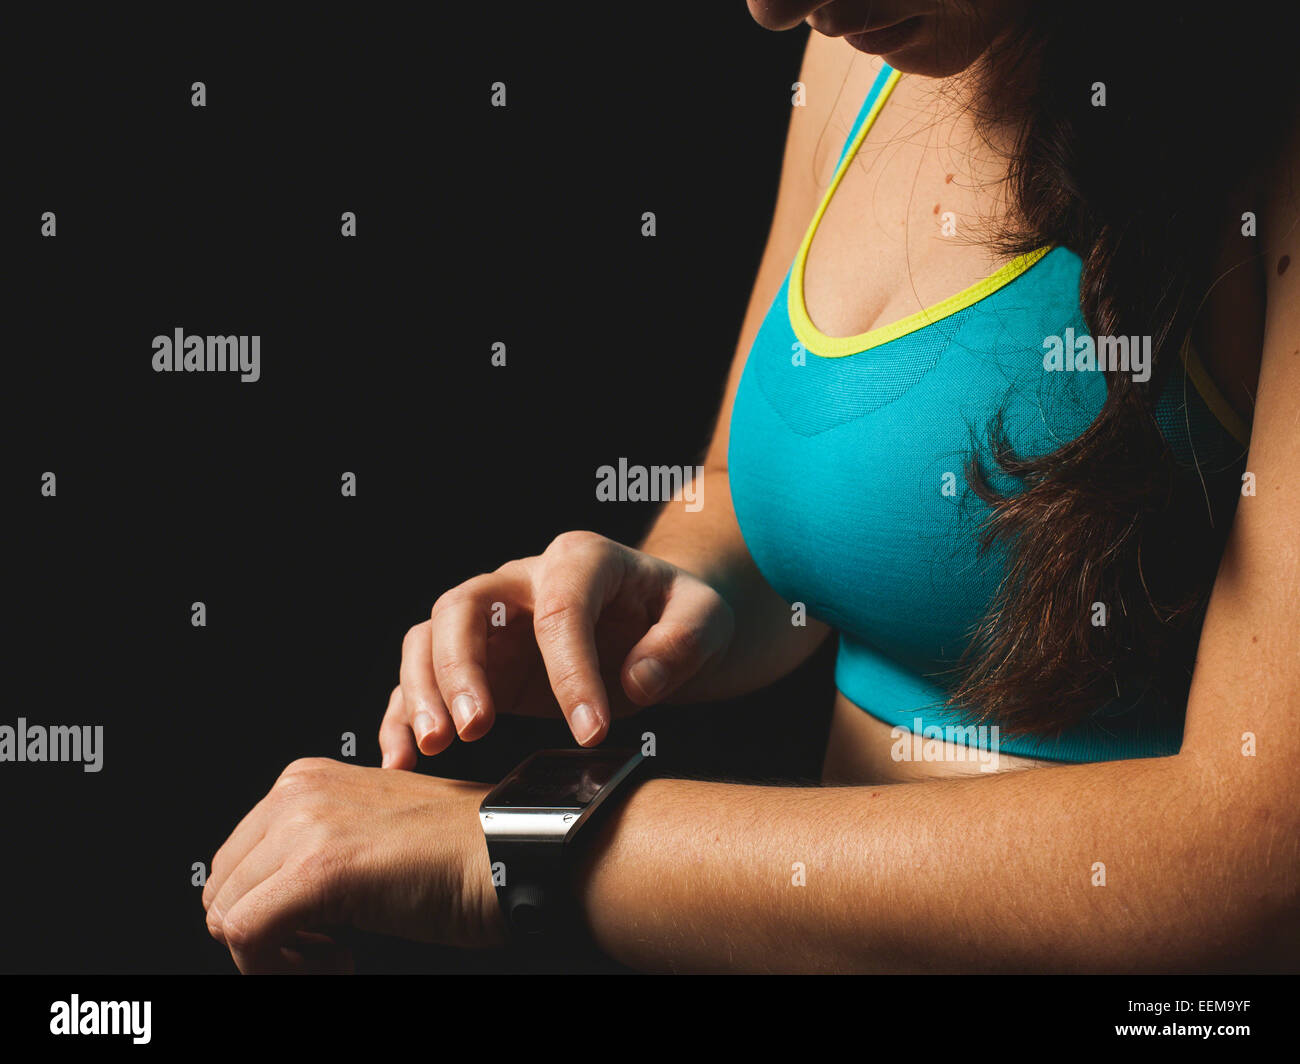 Woman looking at smart watch - Stock Image